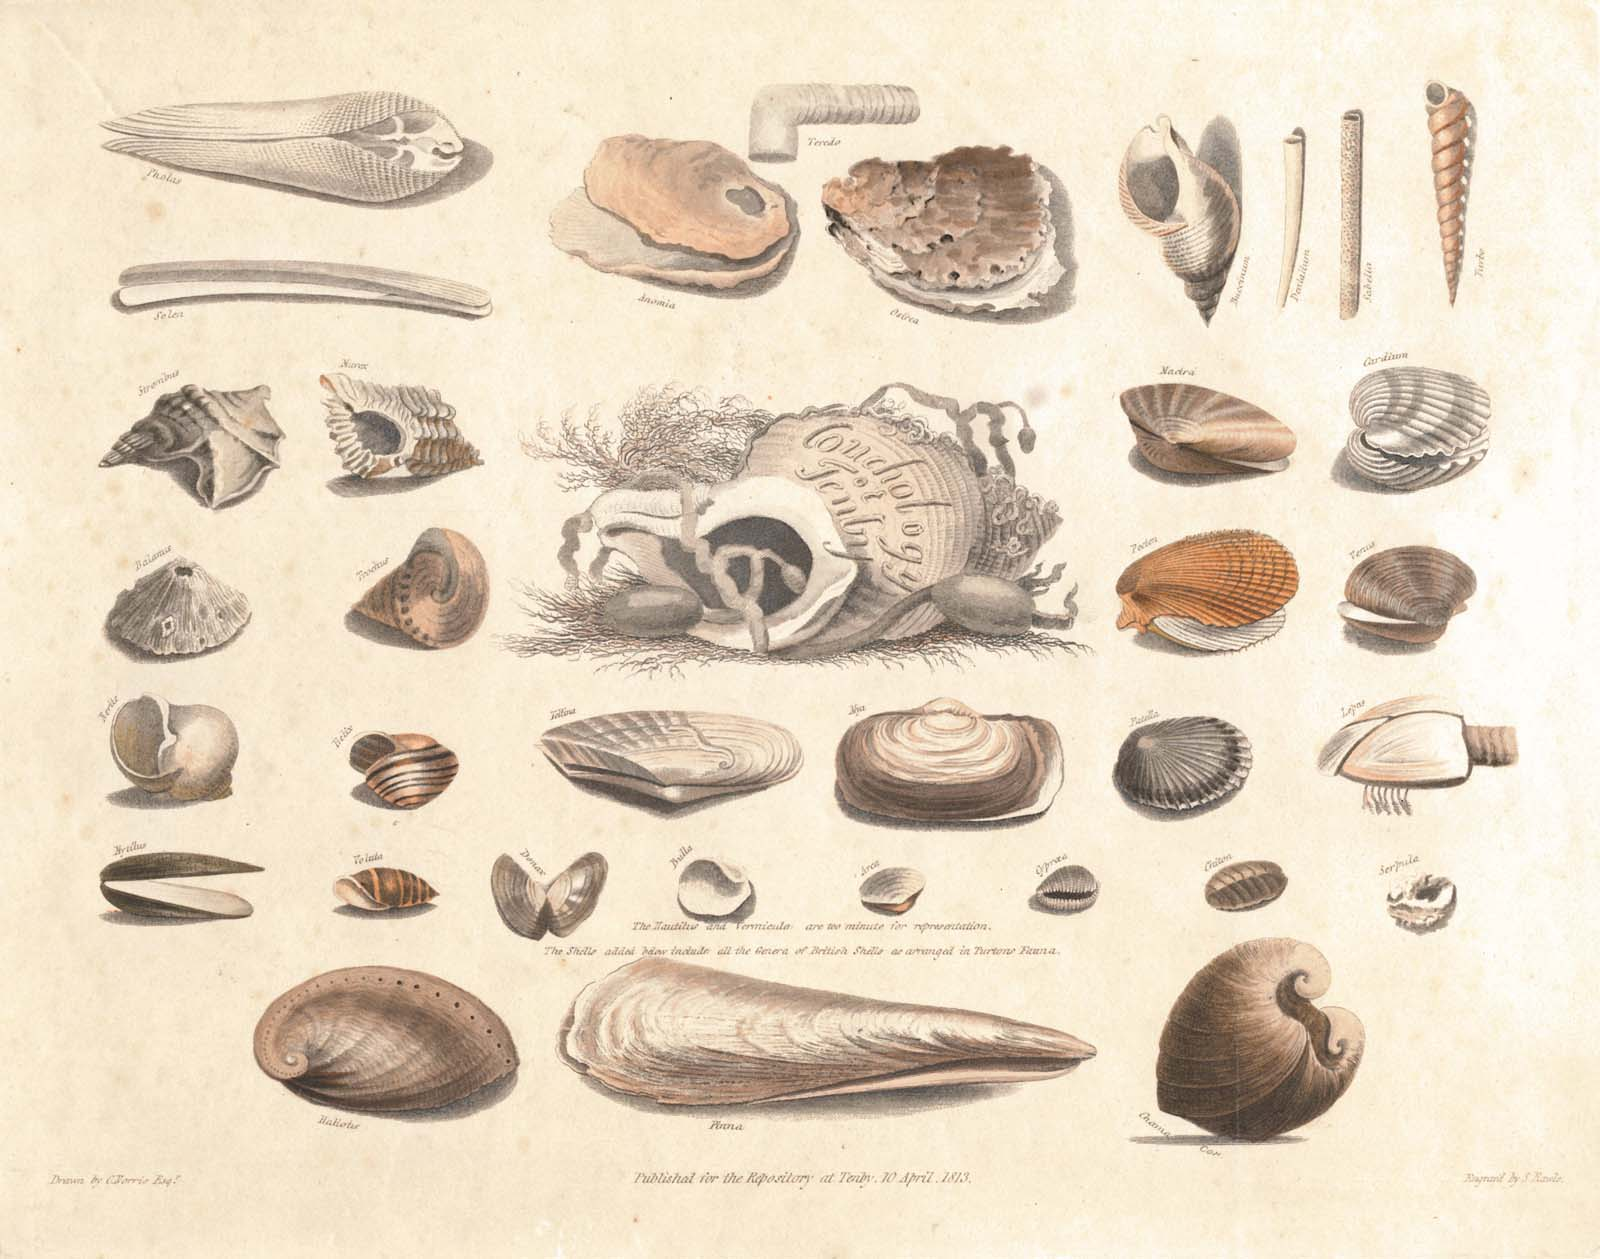 watercolour drawing of a selection of shells